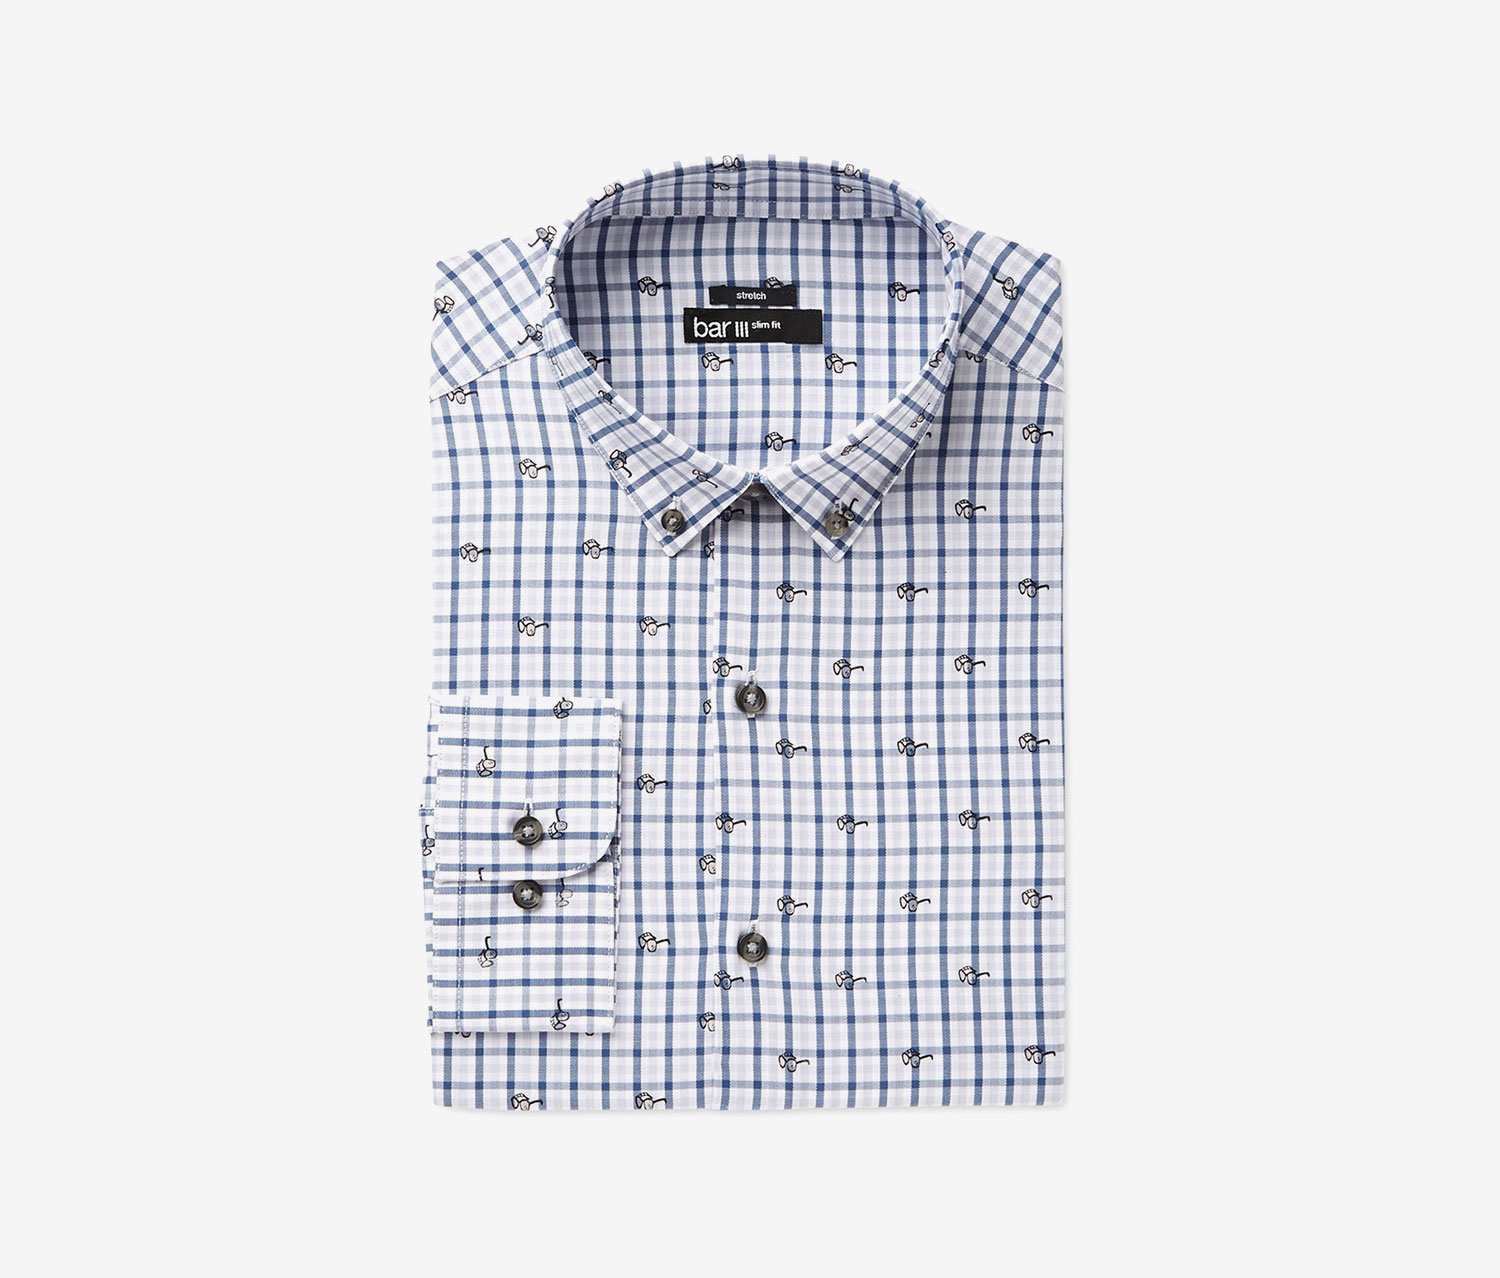 Bar III Men's Easy CareBlue Sunglasses Gingham Print Dress Shirt, Blue/White